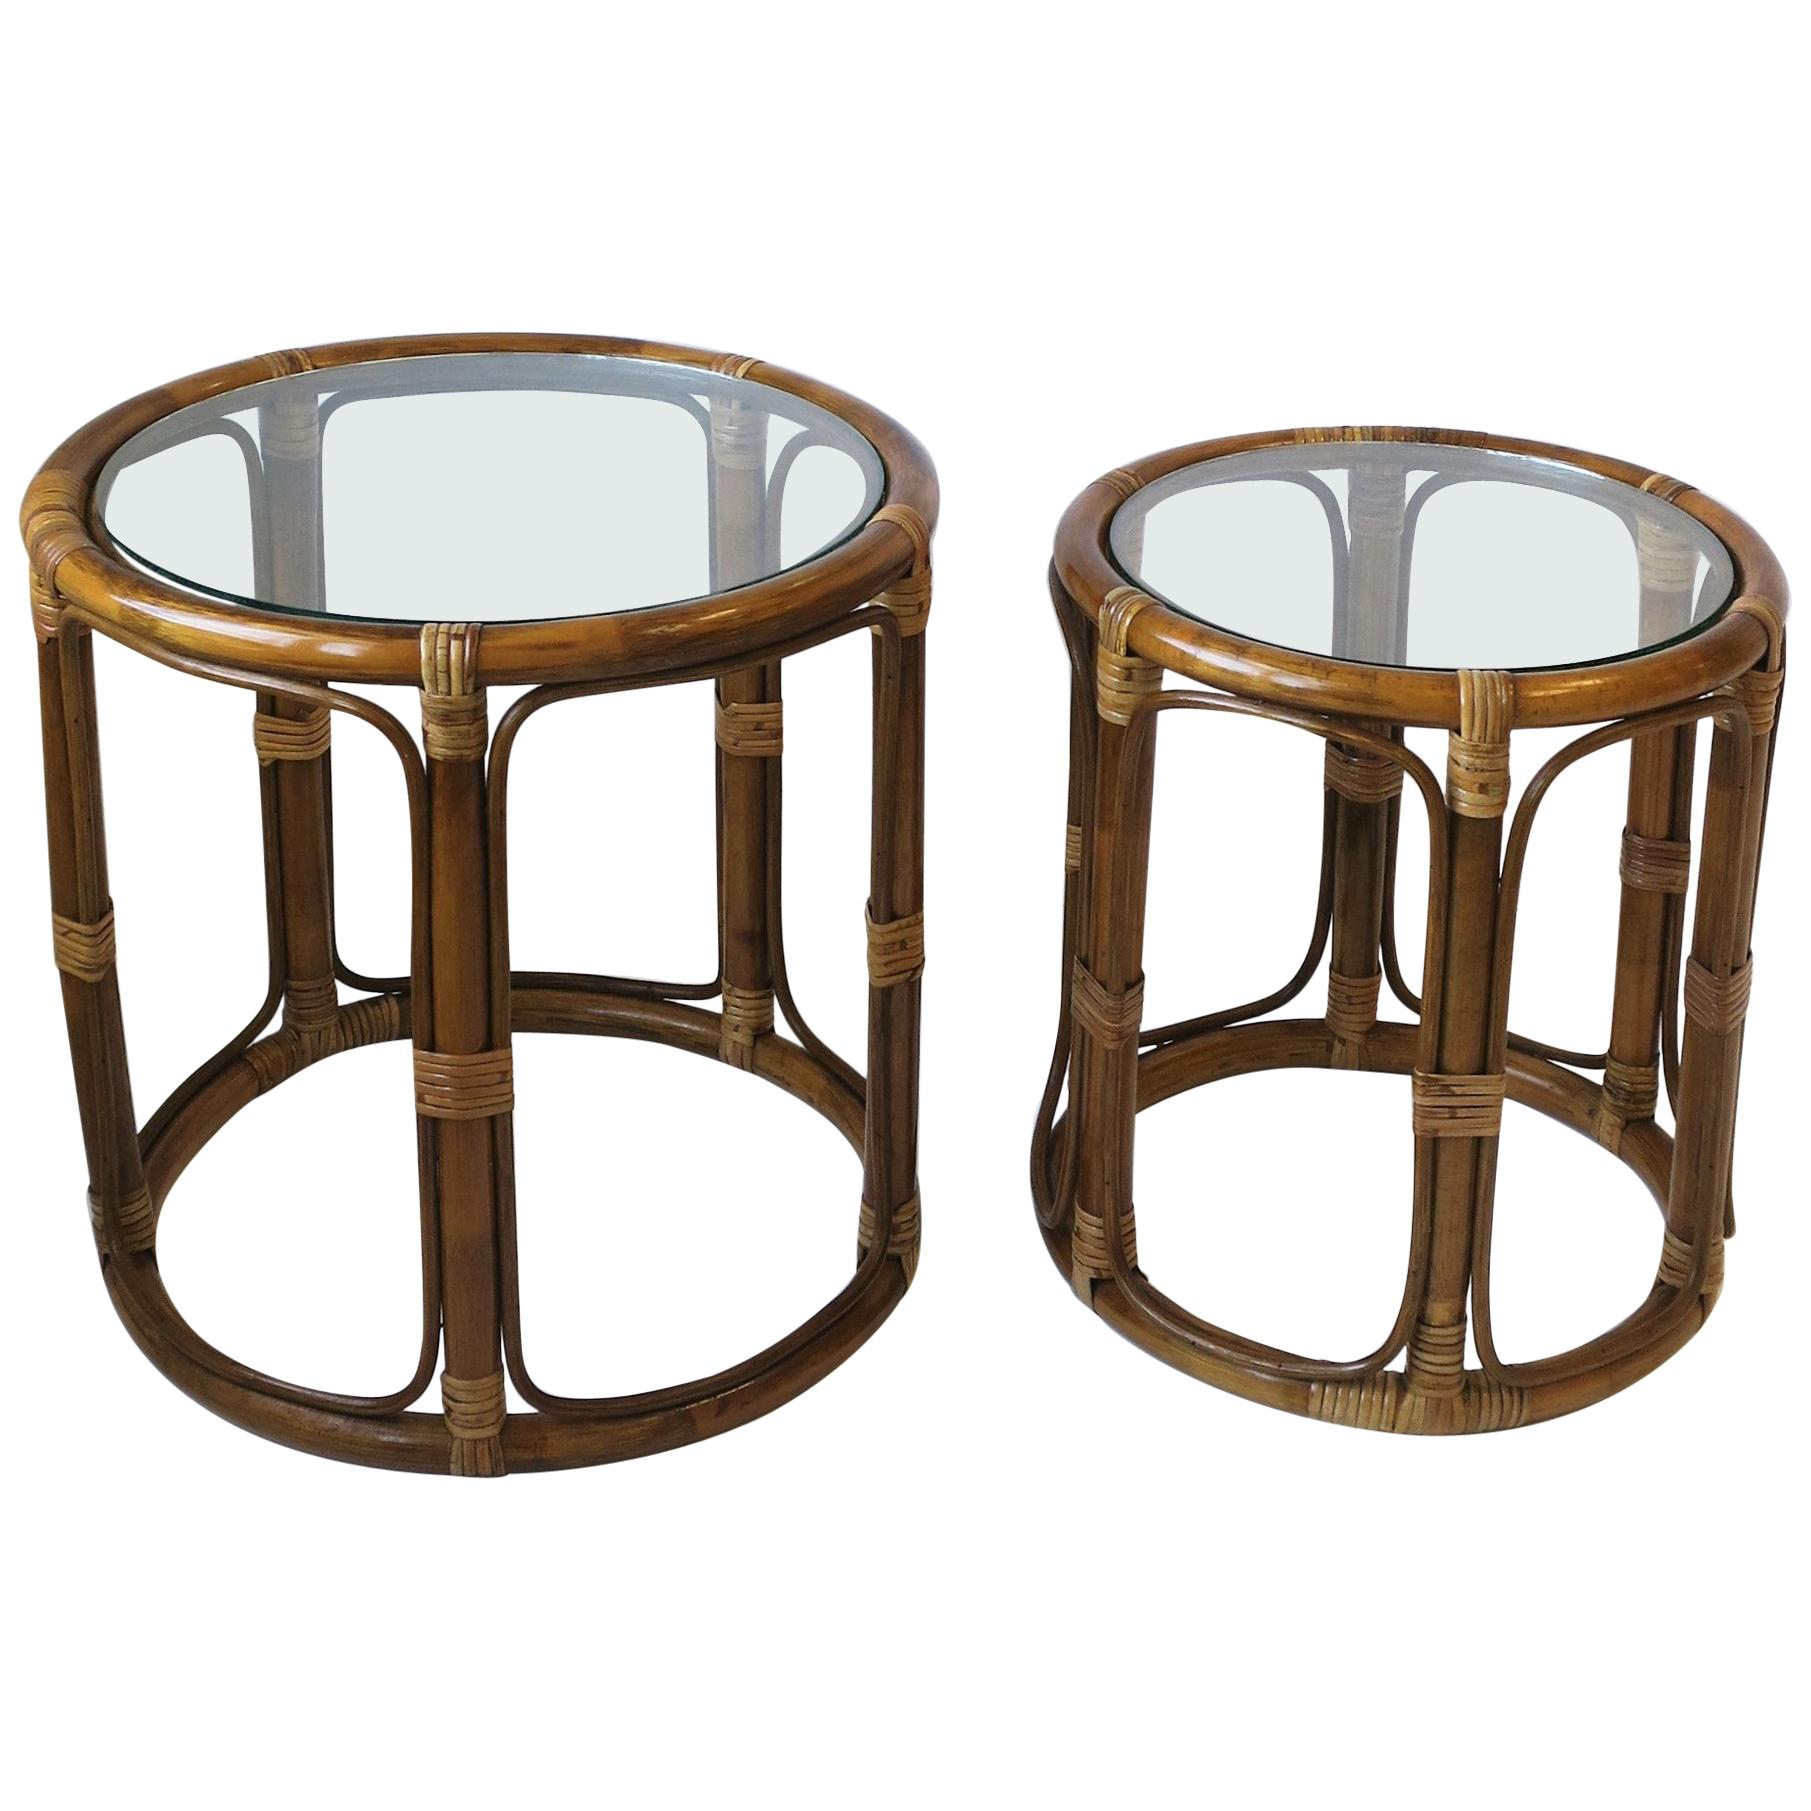 Wicker Rattan Nesting Side Cocktail Tables, Set of 2